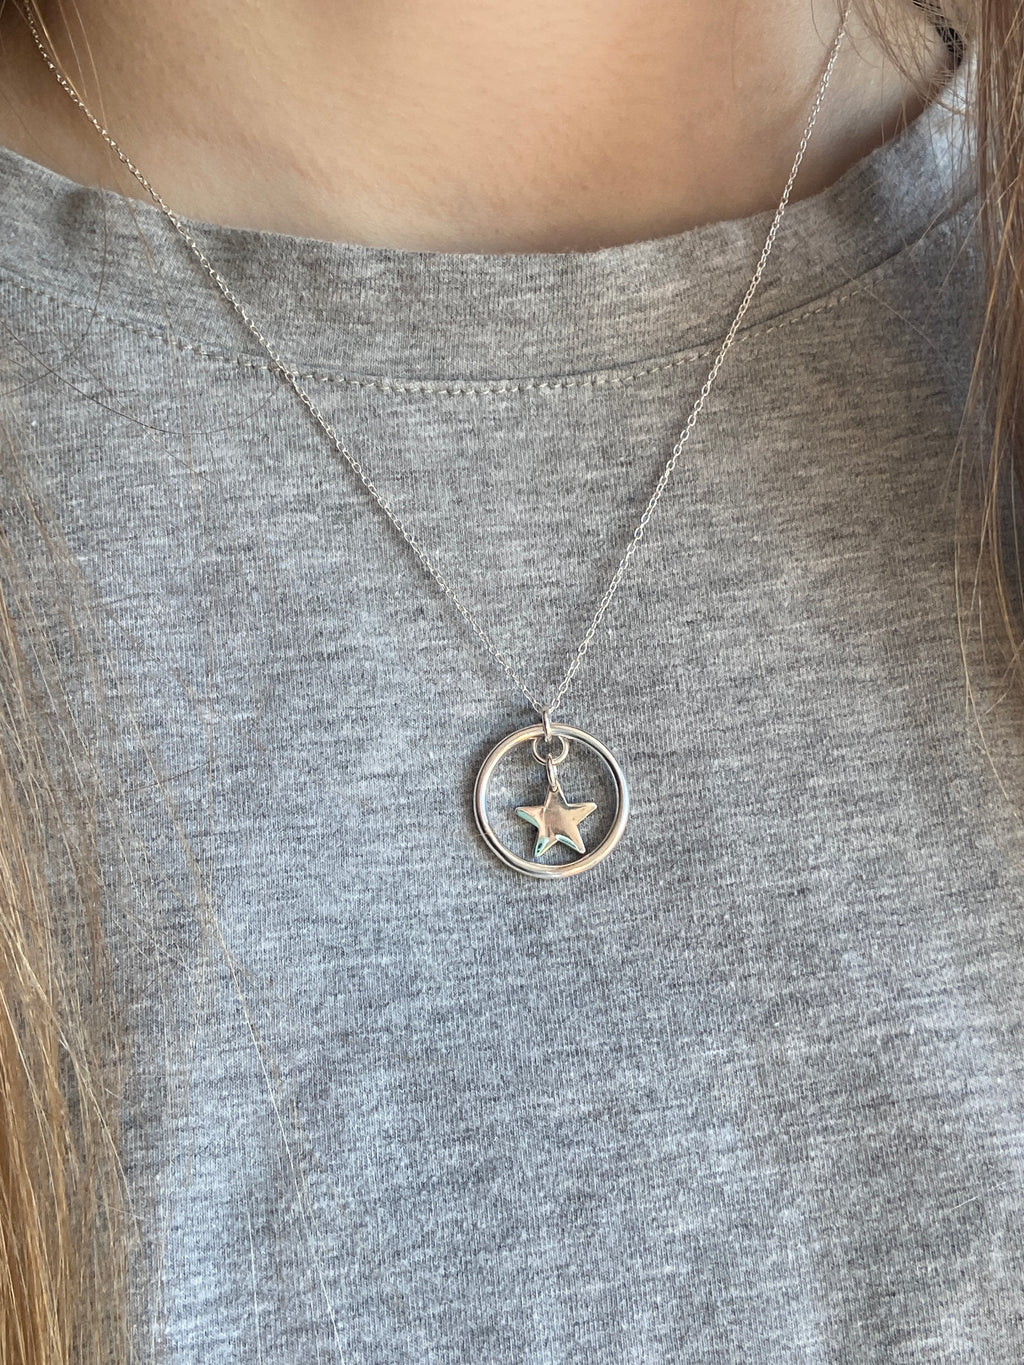 925 star 💫 and circle of life pendant